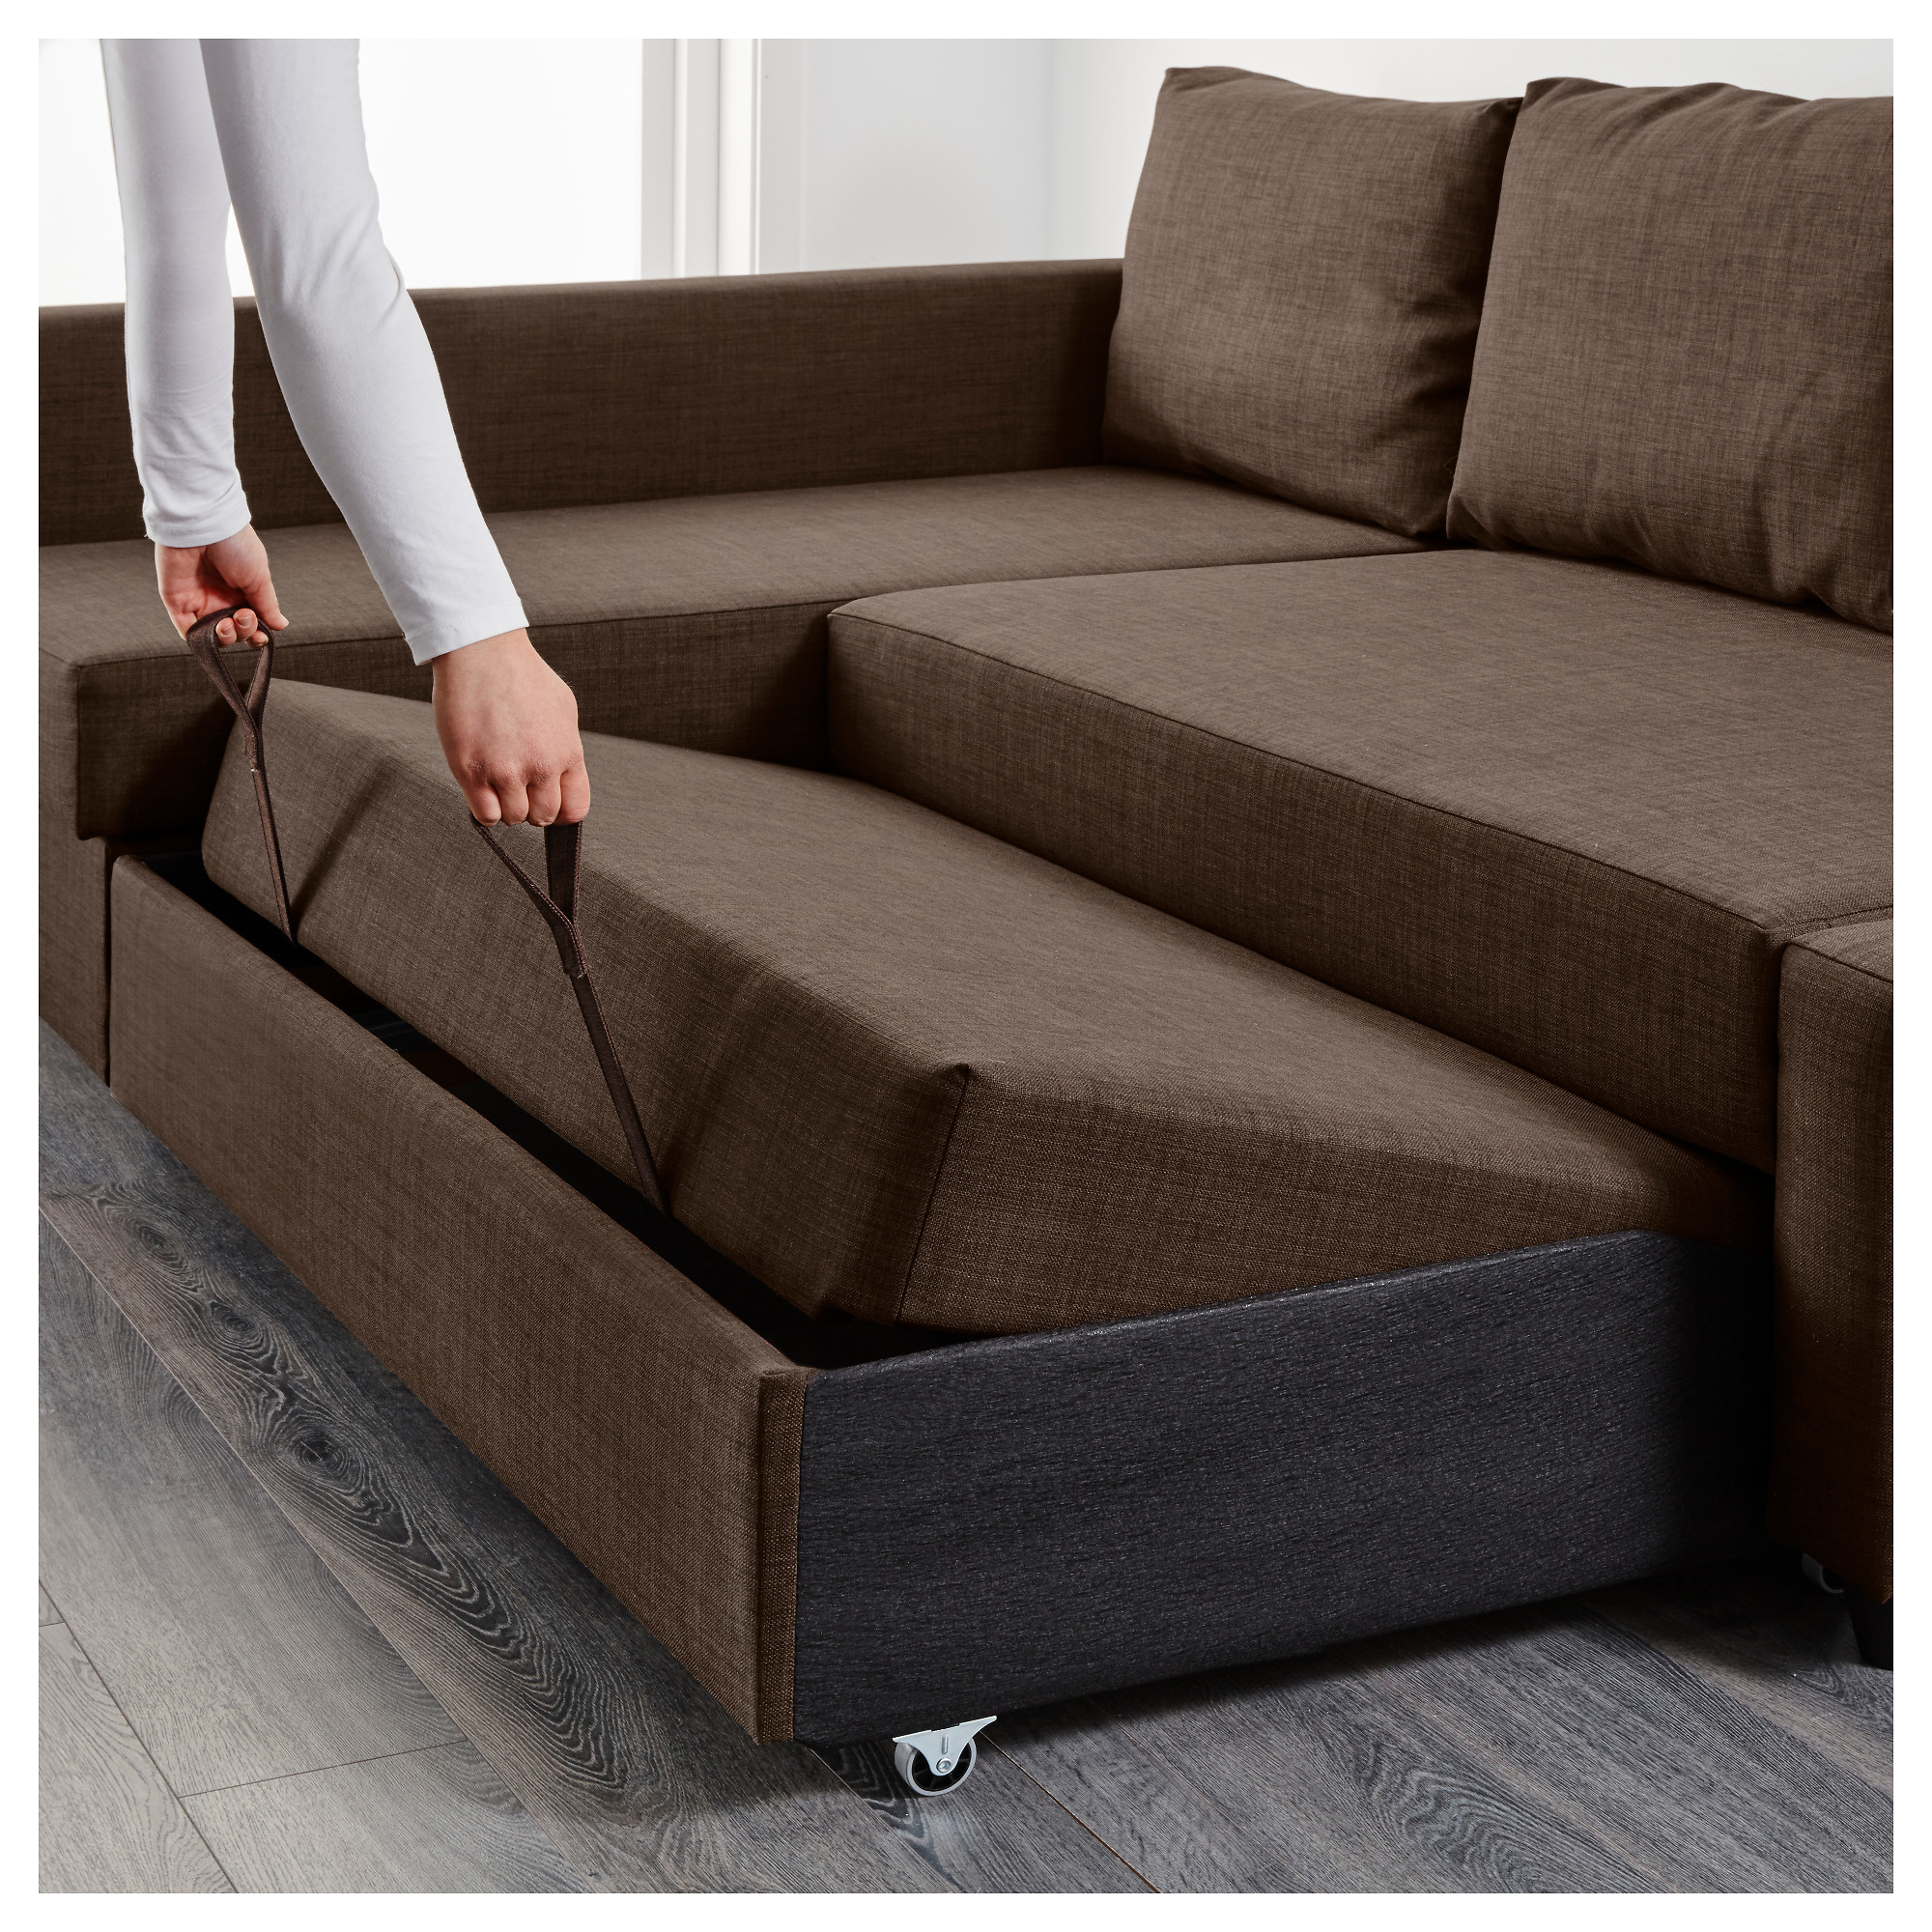 Storage sofa bed best storage design 2017 for Duke sectional sofa bed w storage